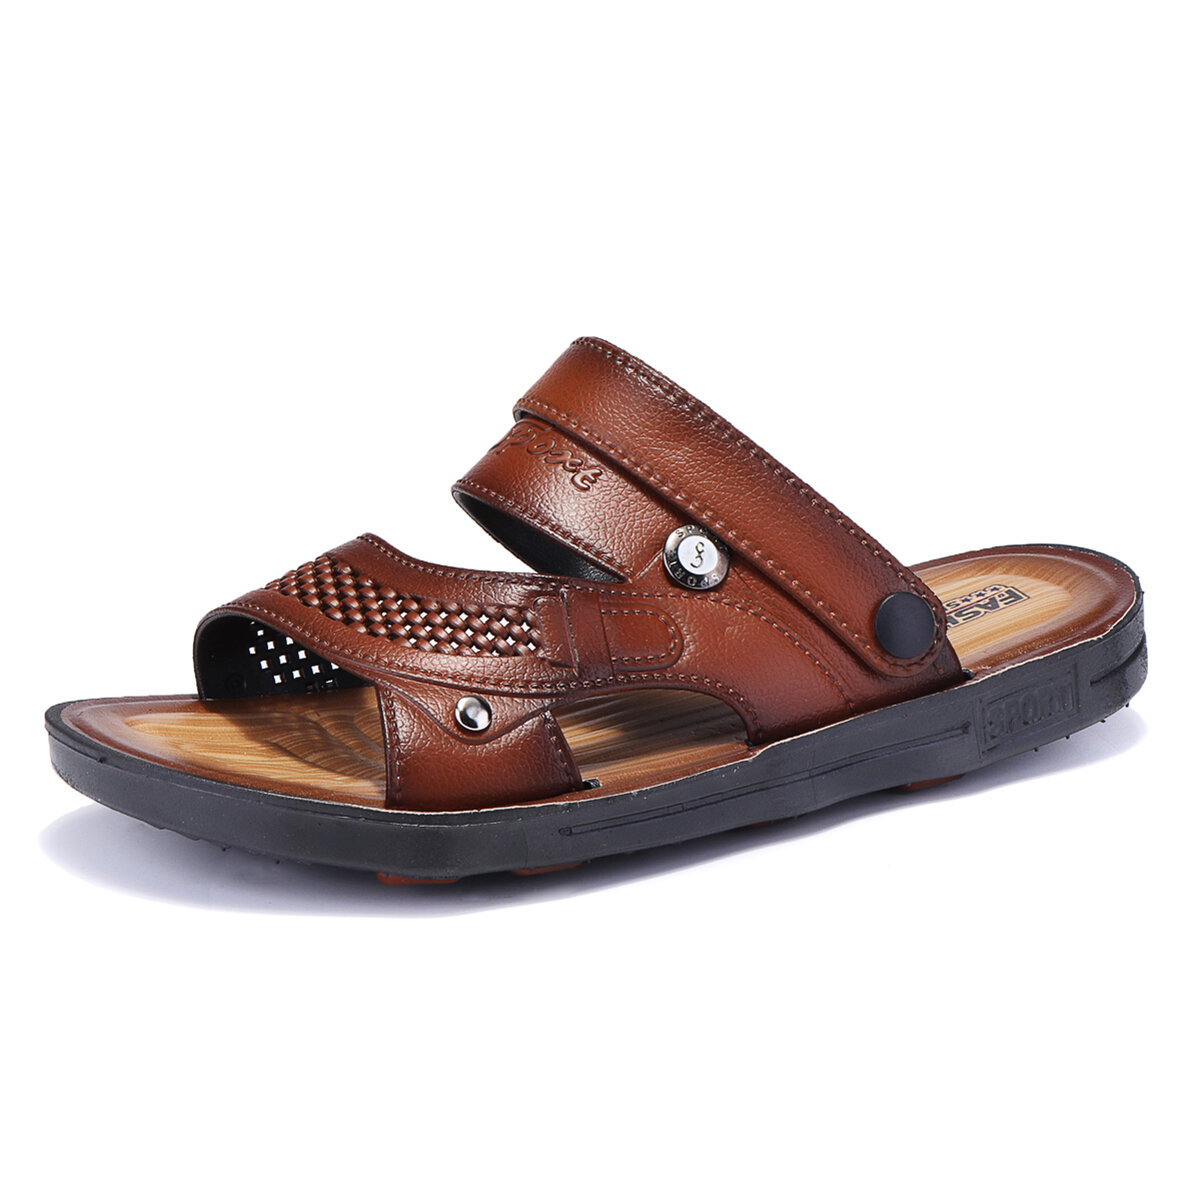 Latest Fashion Trends & Celebrity Style Glamour Fashion latest man sandal